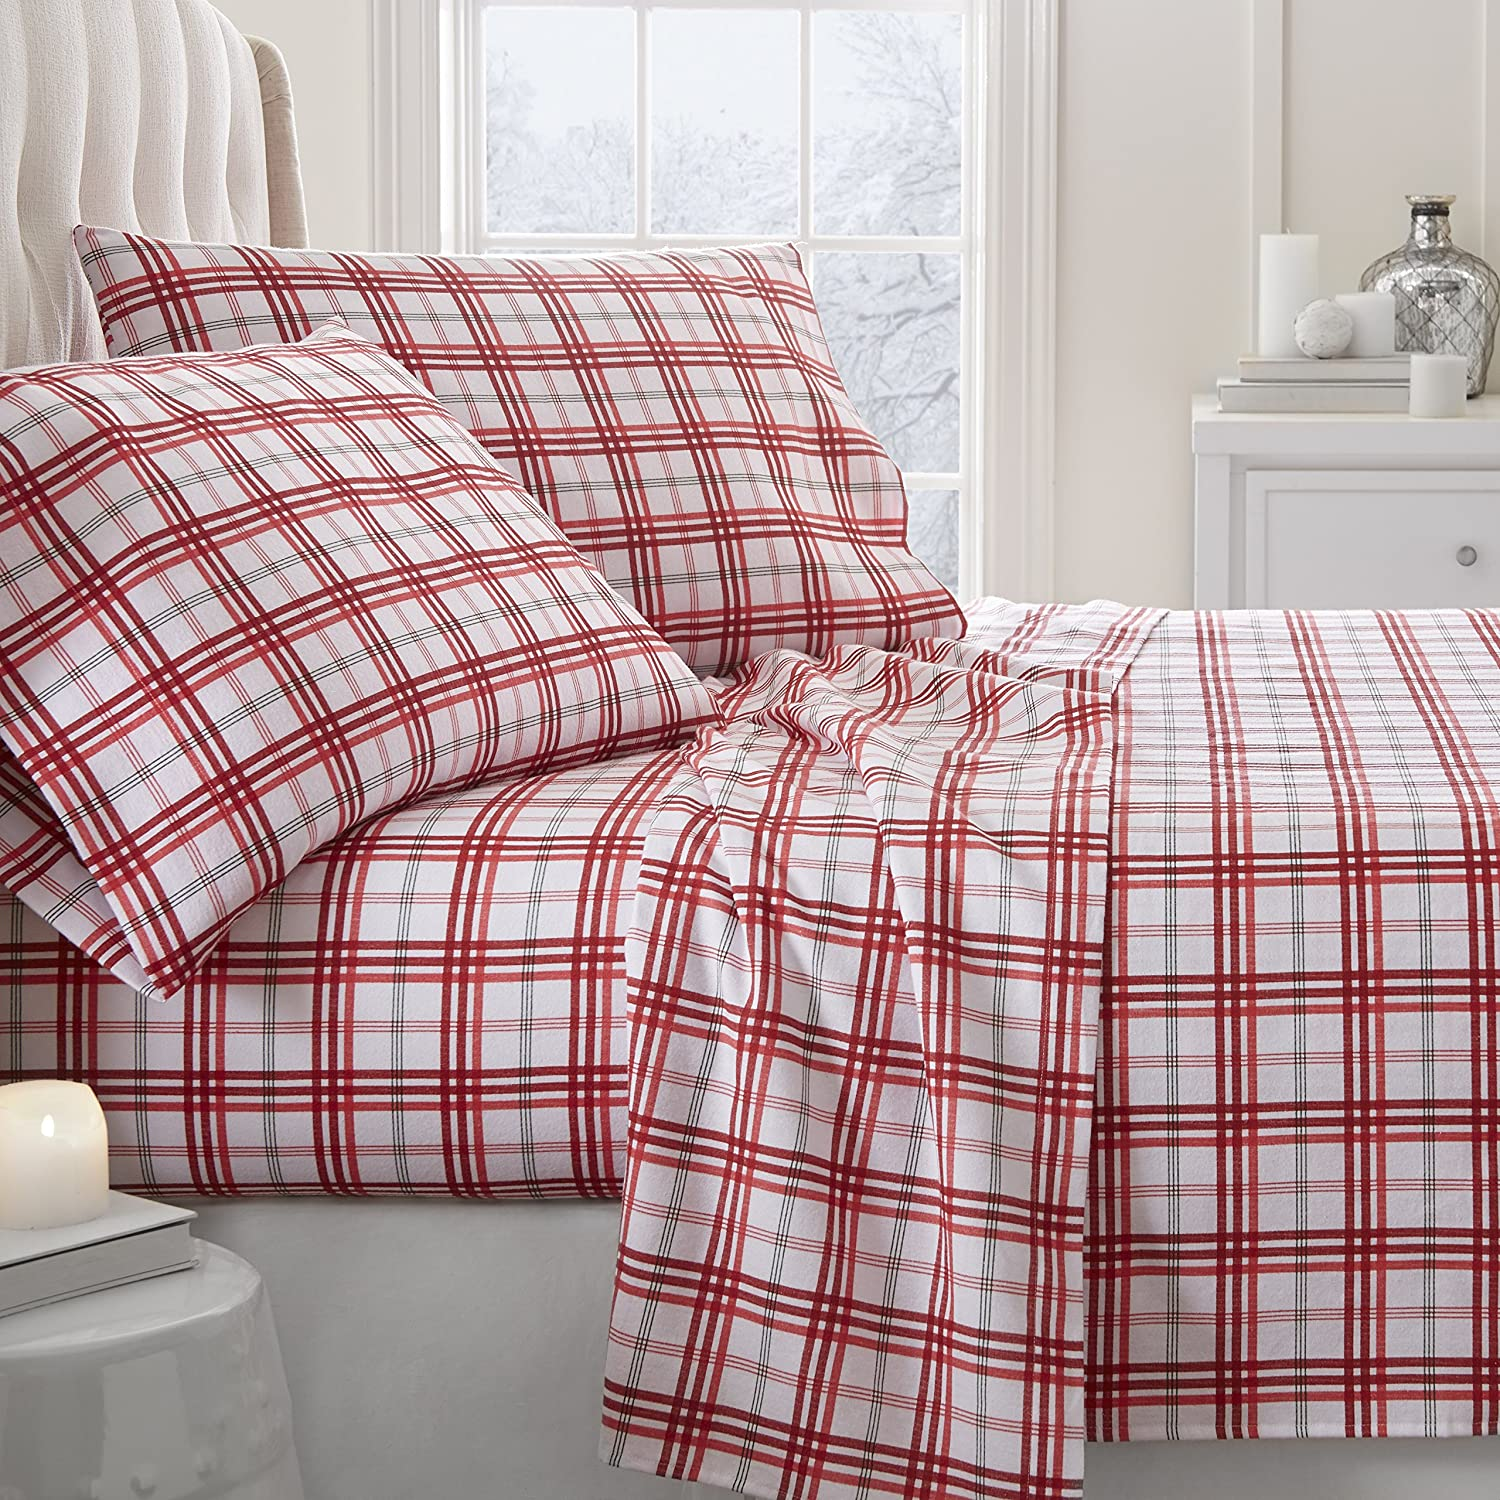 ienjoy Home 4 Piece Flannel Sheet Set Red Christmas Plaid Patterned, California King, Red